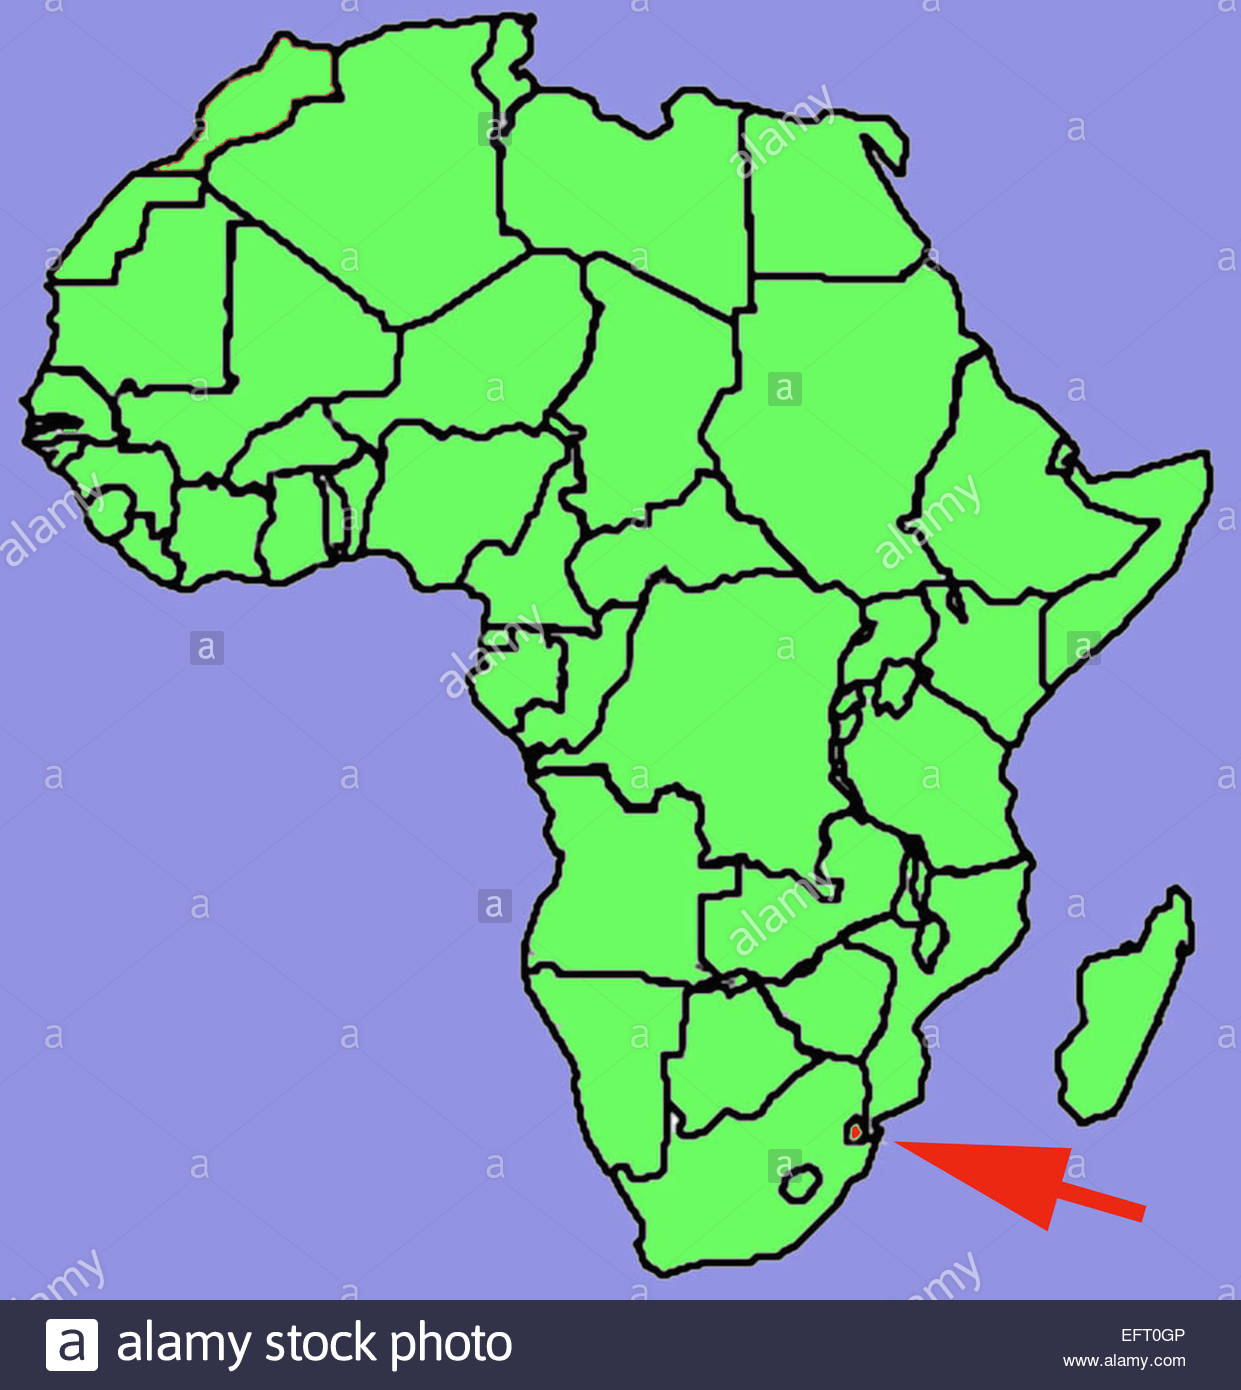 Map Of Africa Showing Location Of Swaziland Swaziland Africa Stock